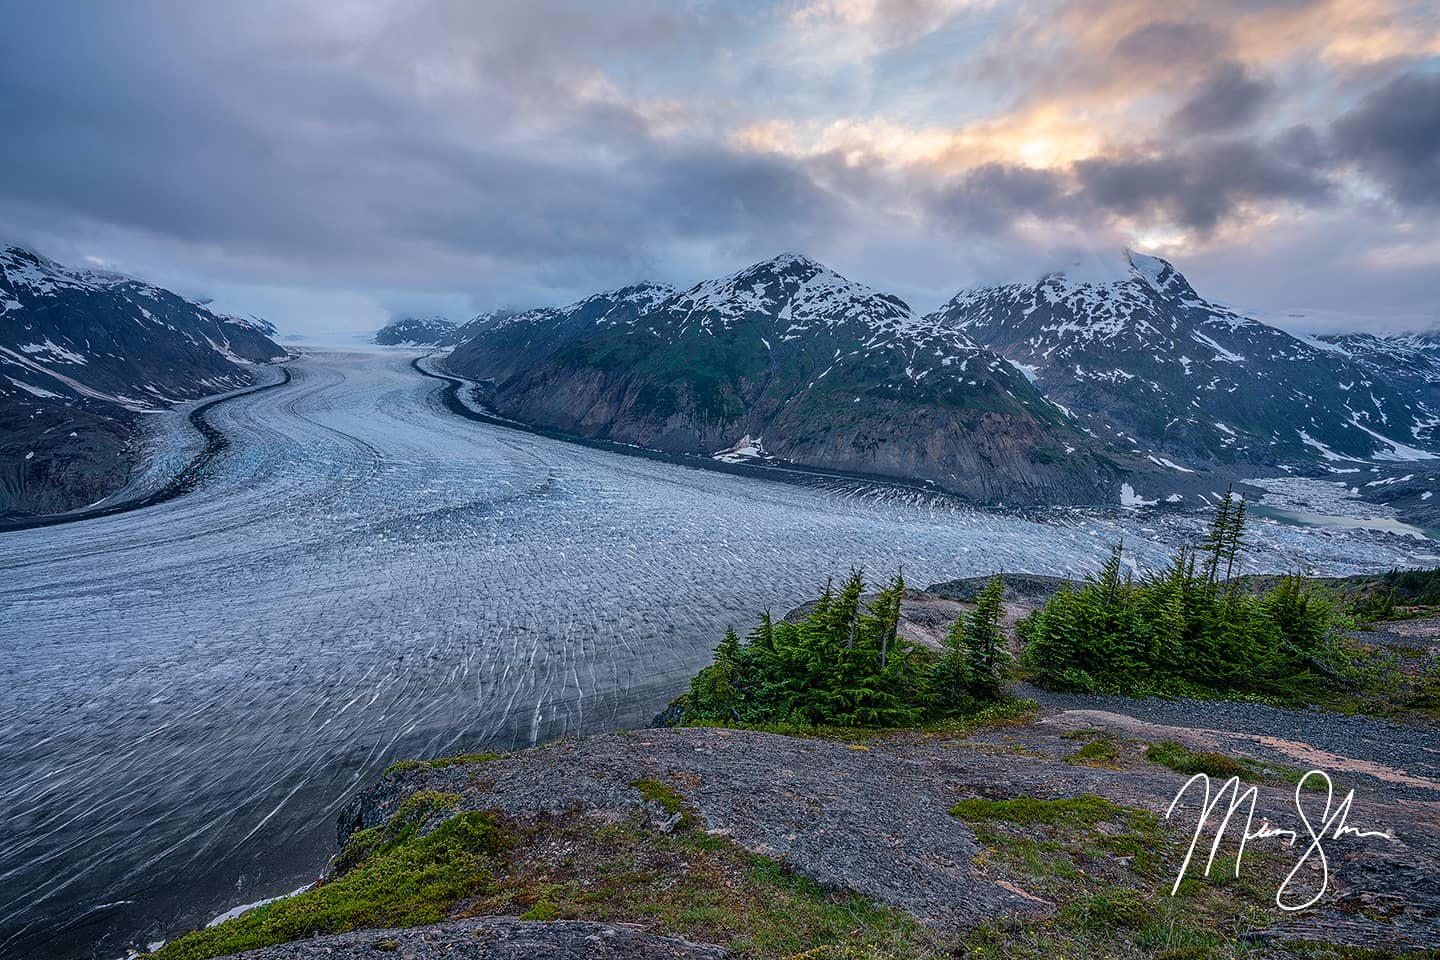 Open edition fine art print of Sunset Over the Salmon Glacier from Mickey Shannon Photography. Location: Salmon Glacier, Stewart, British Columbia